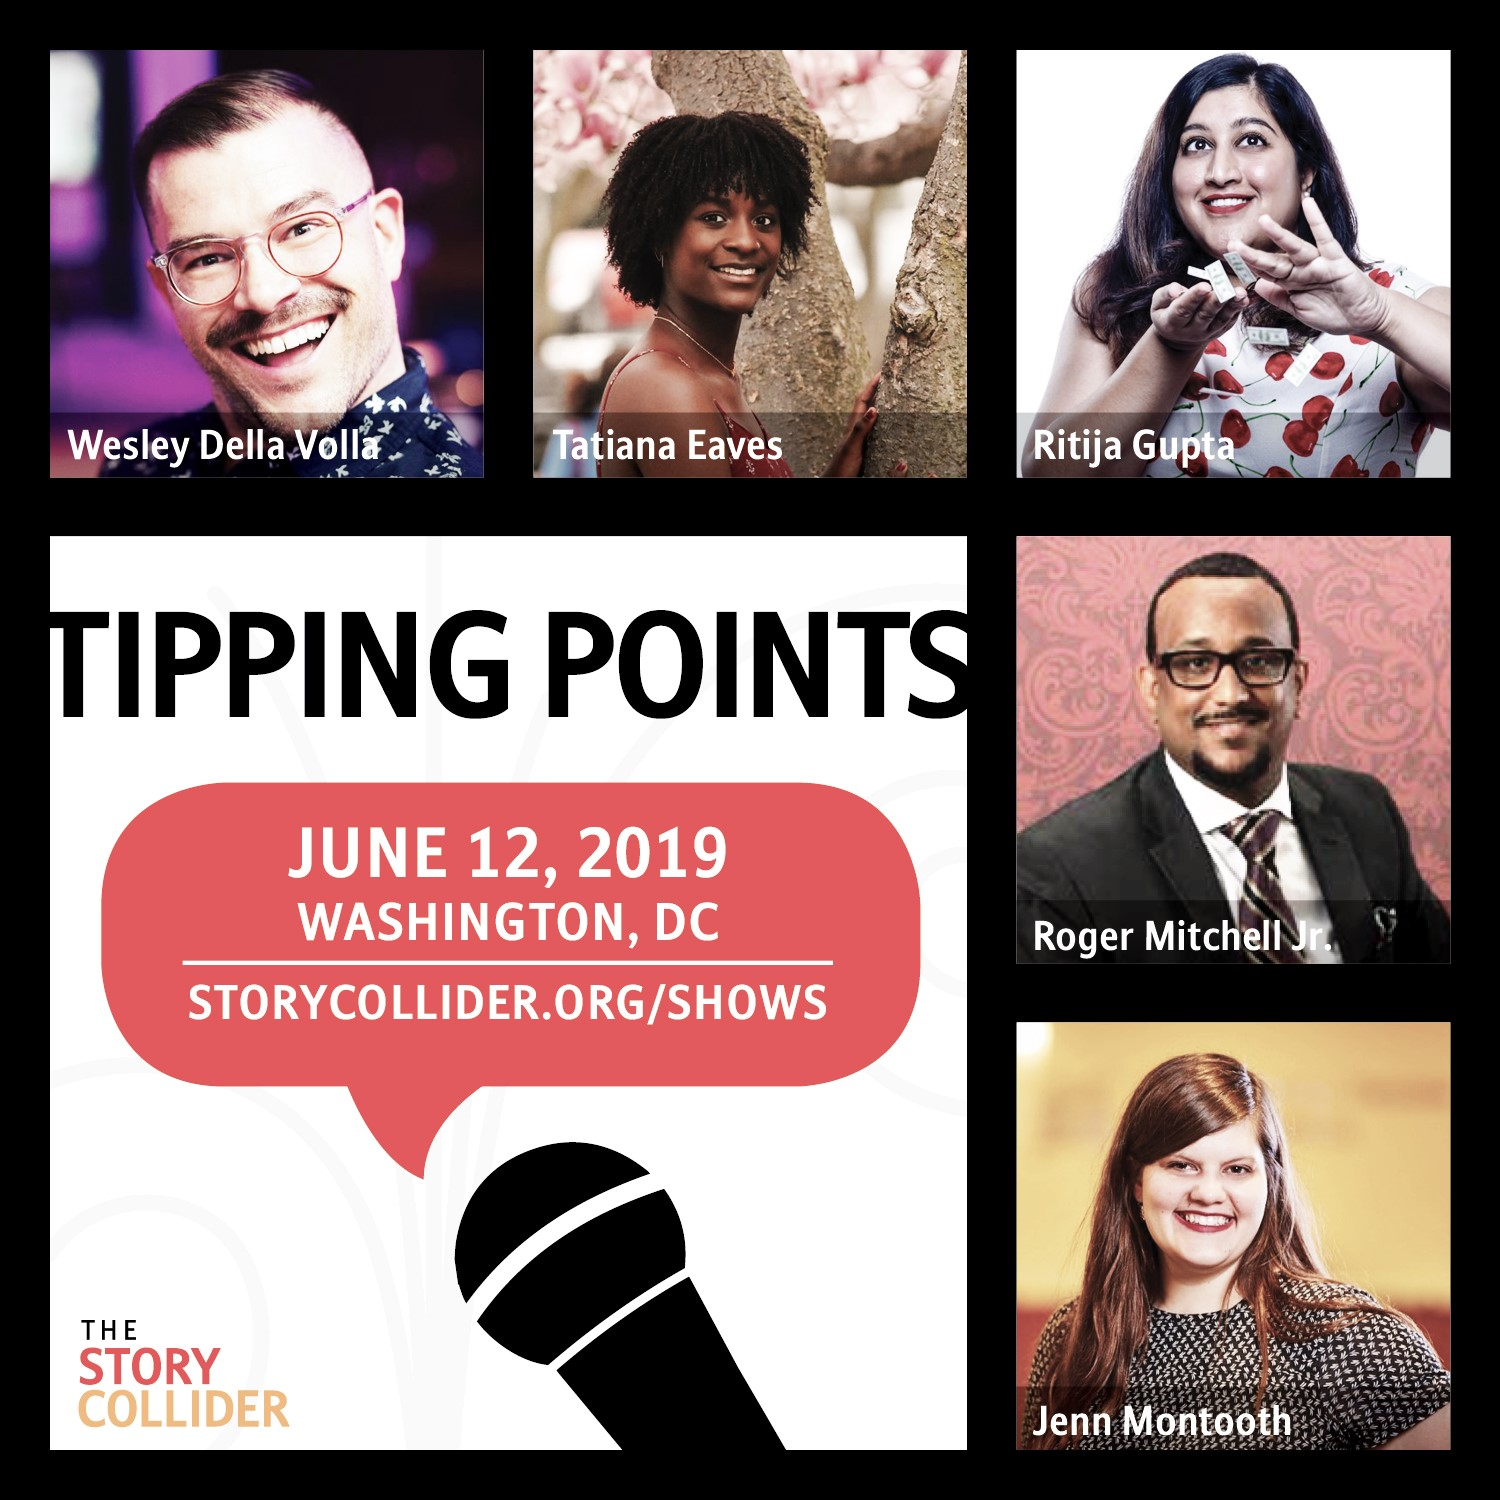 Story Collider: Tipping Points